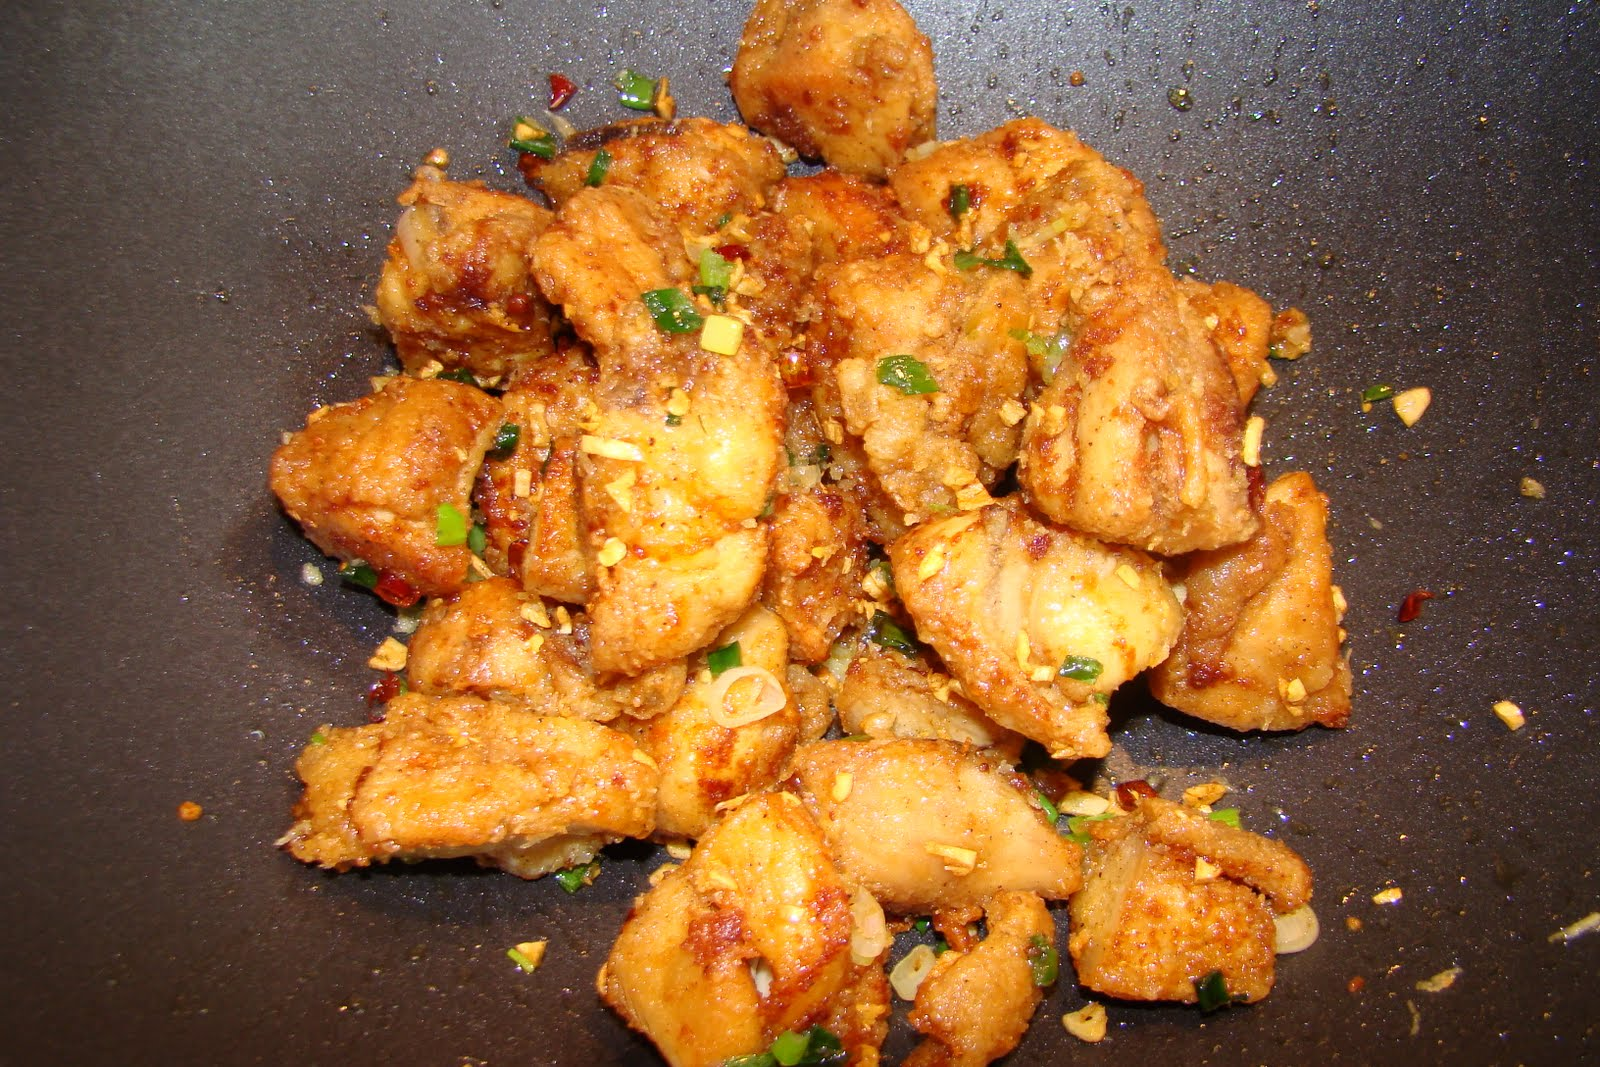 salt and pepper chicken wings. So I decided to try it out using my